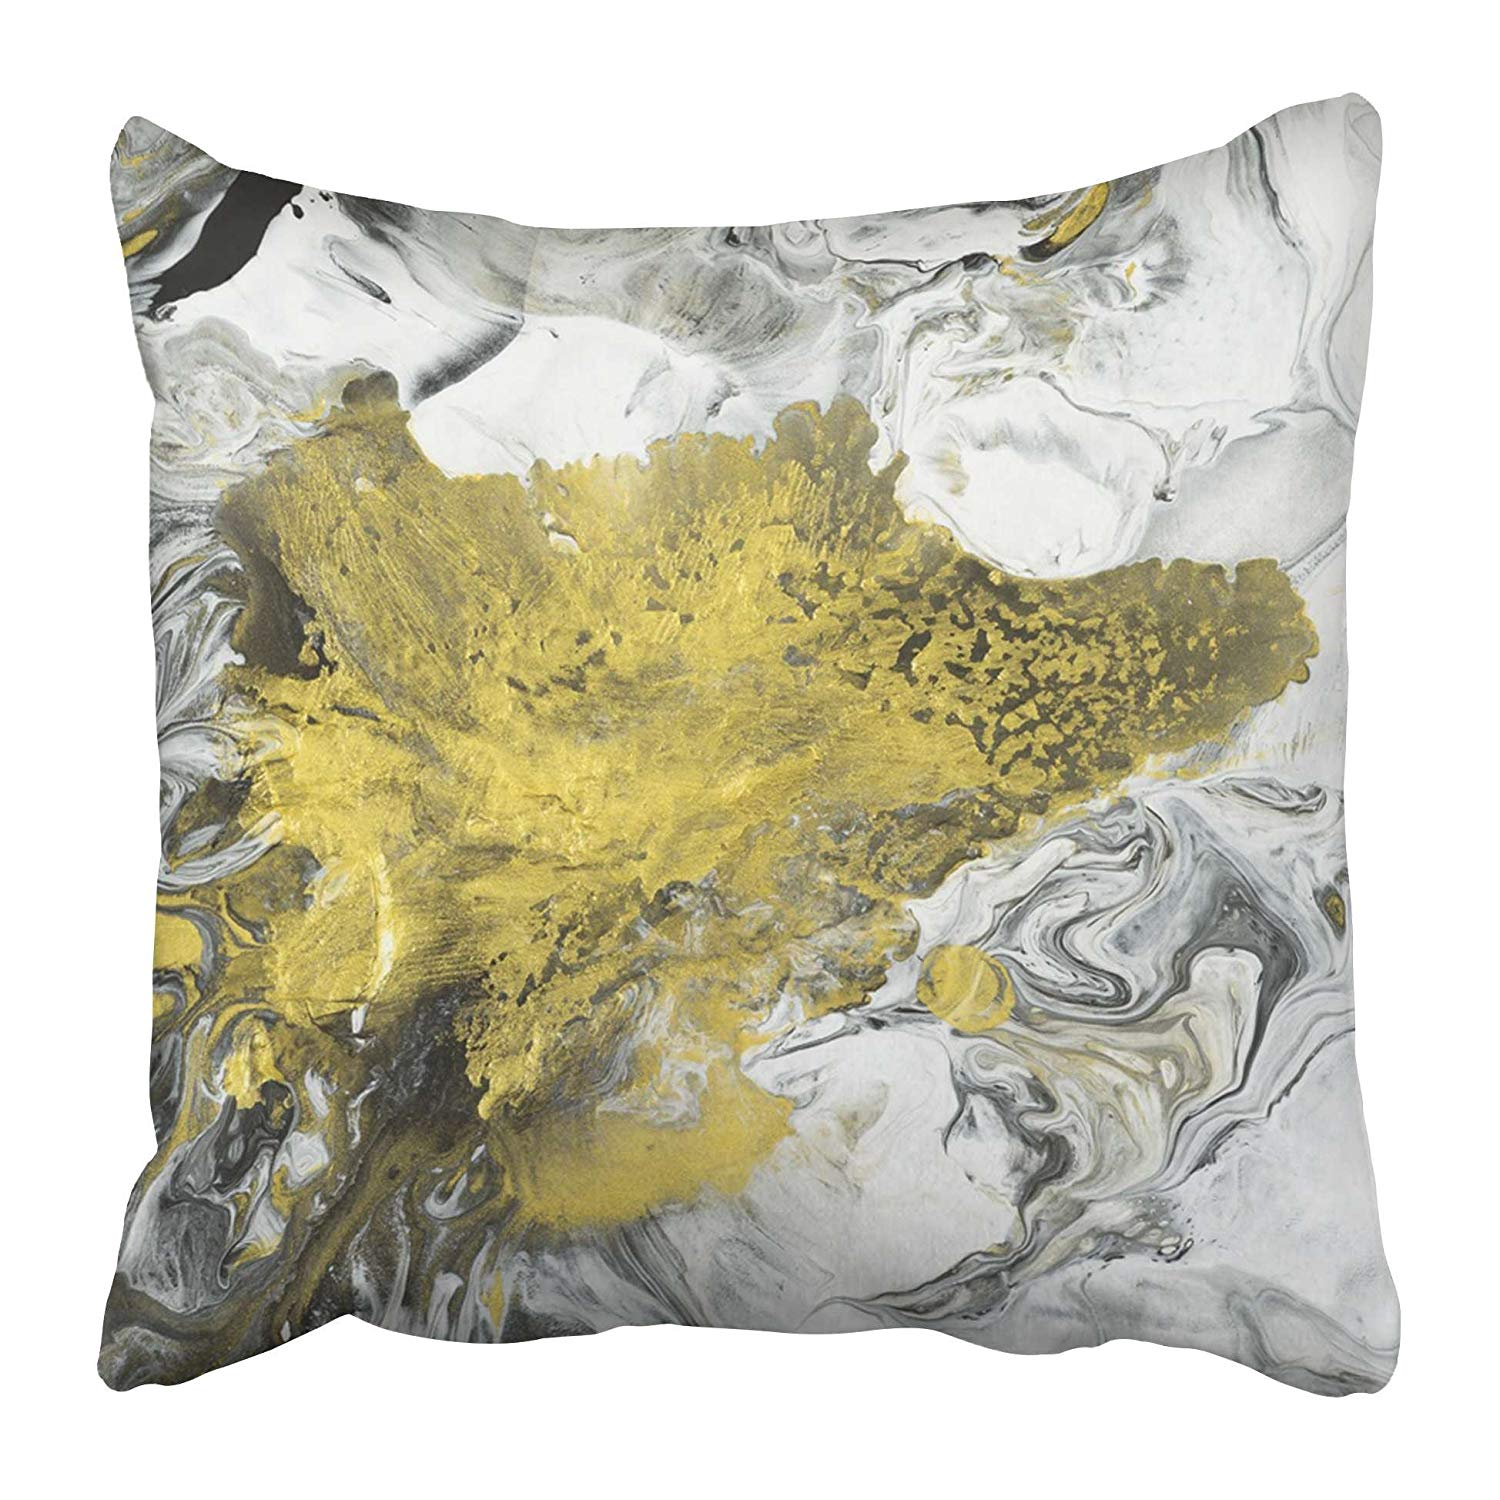 USART Abstract Hand Black and White with Gold Close Up Fragment of Acrylic Painting Pillow Case Cushion Cover 16x16 inch